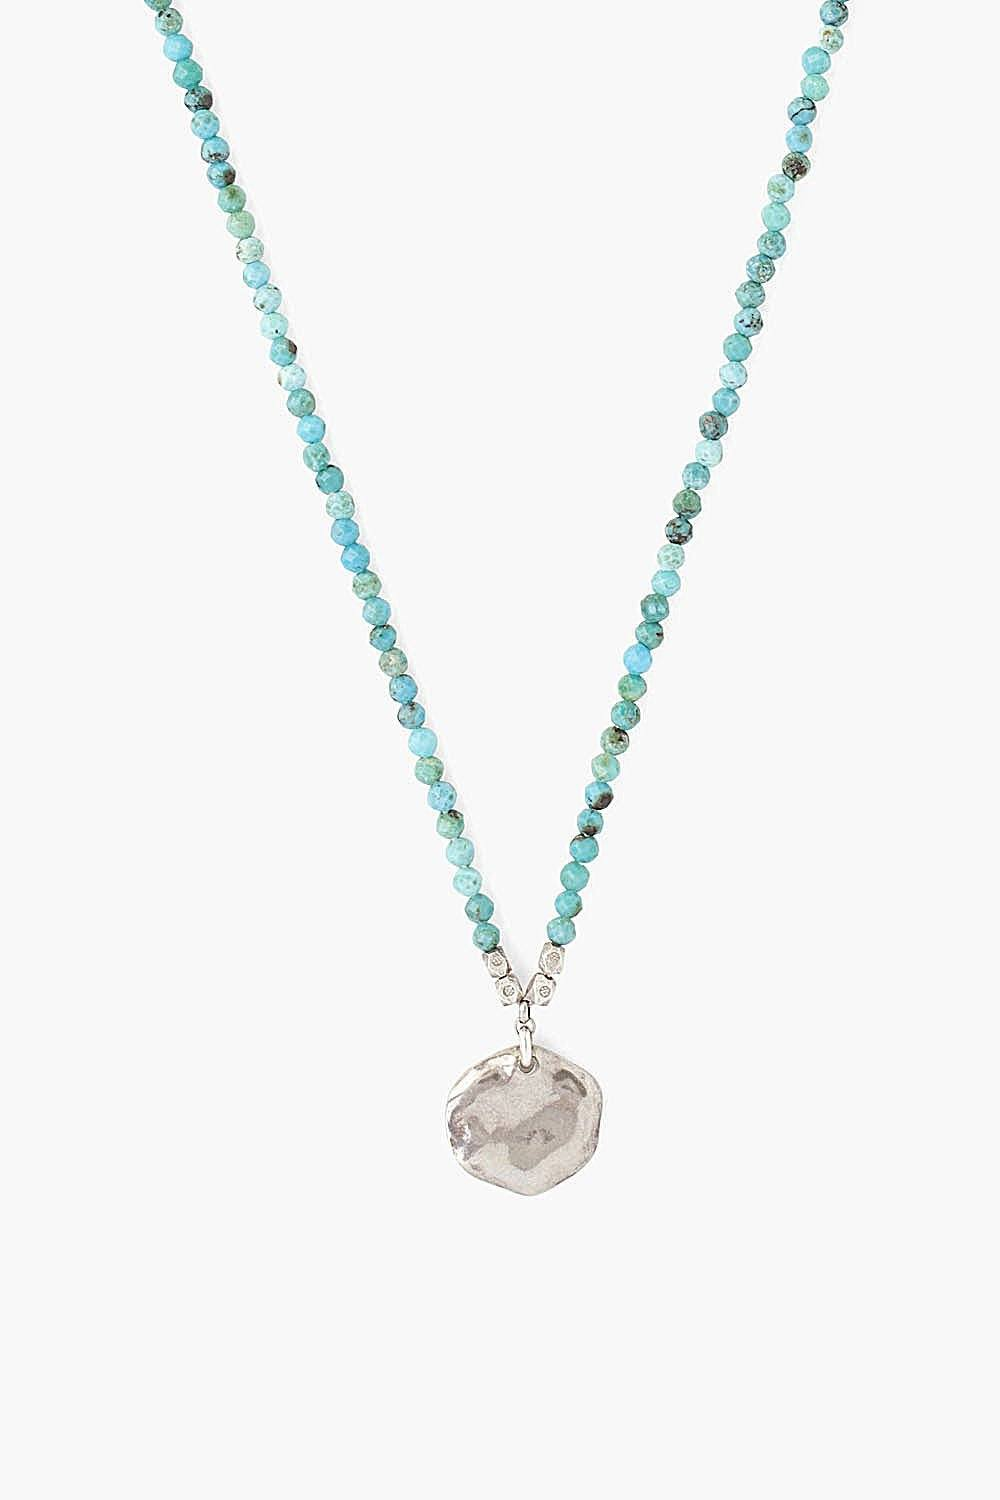 Turquoise and Silver Coin Pendant Necklace